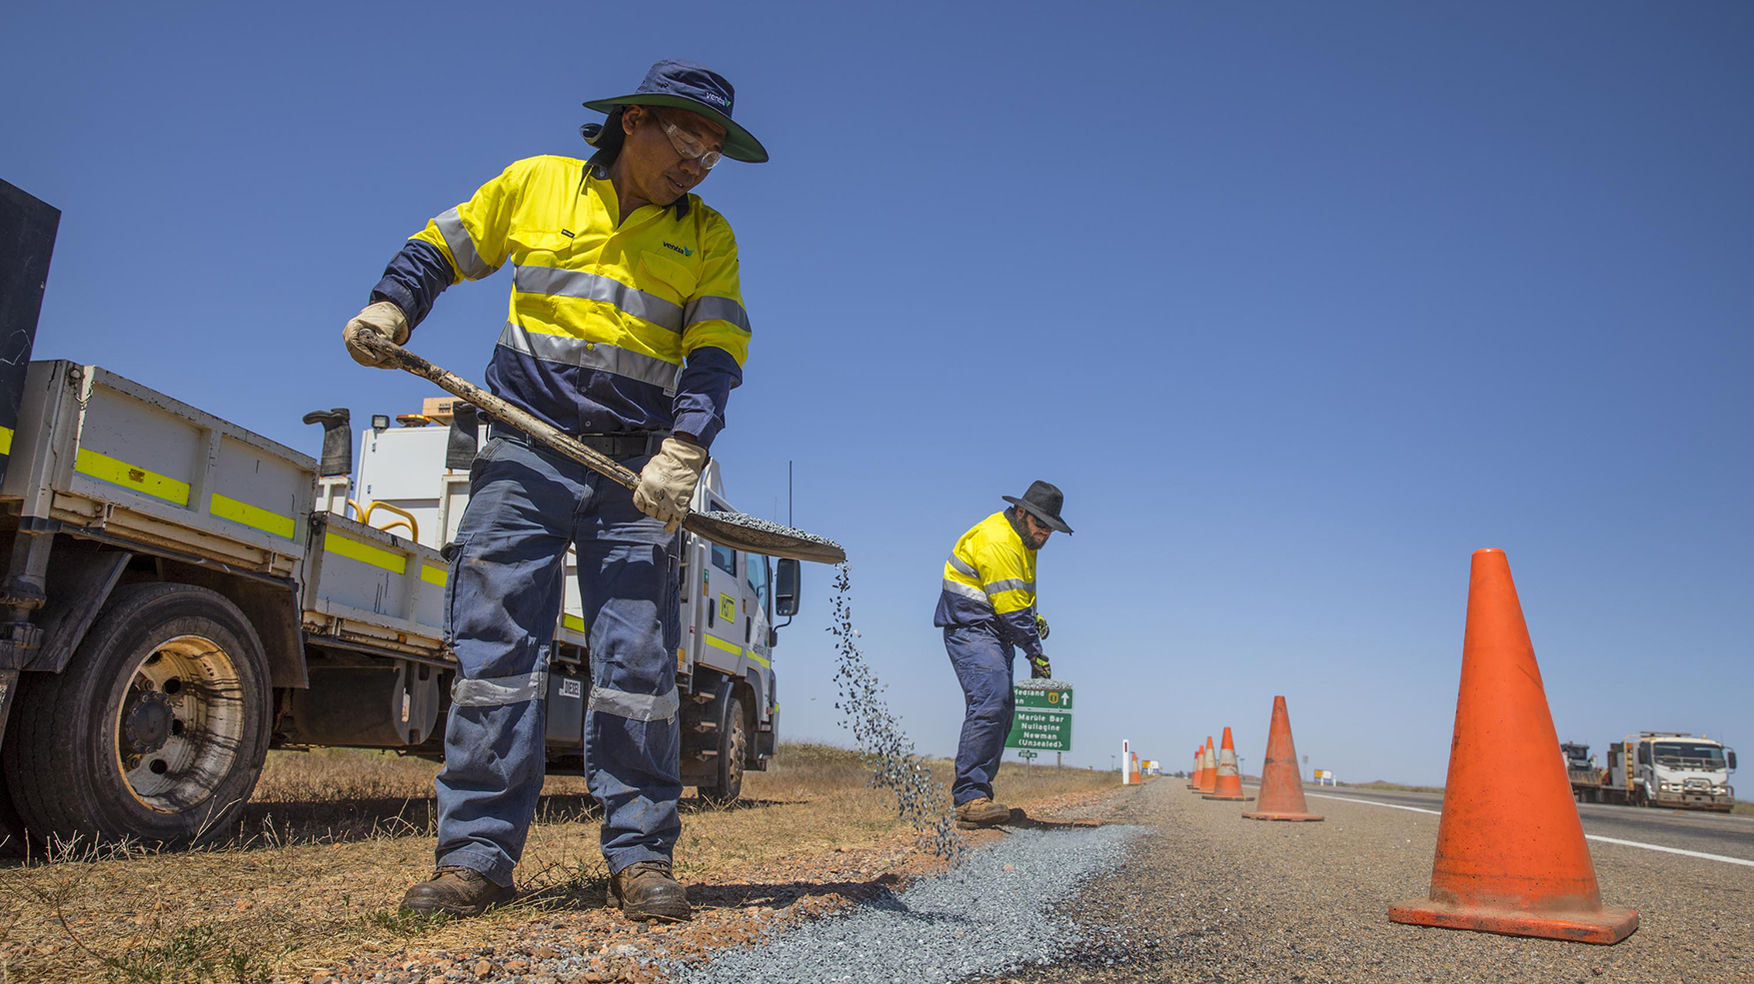 Road maintenance, improvements, WA, Western Australian, works